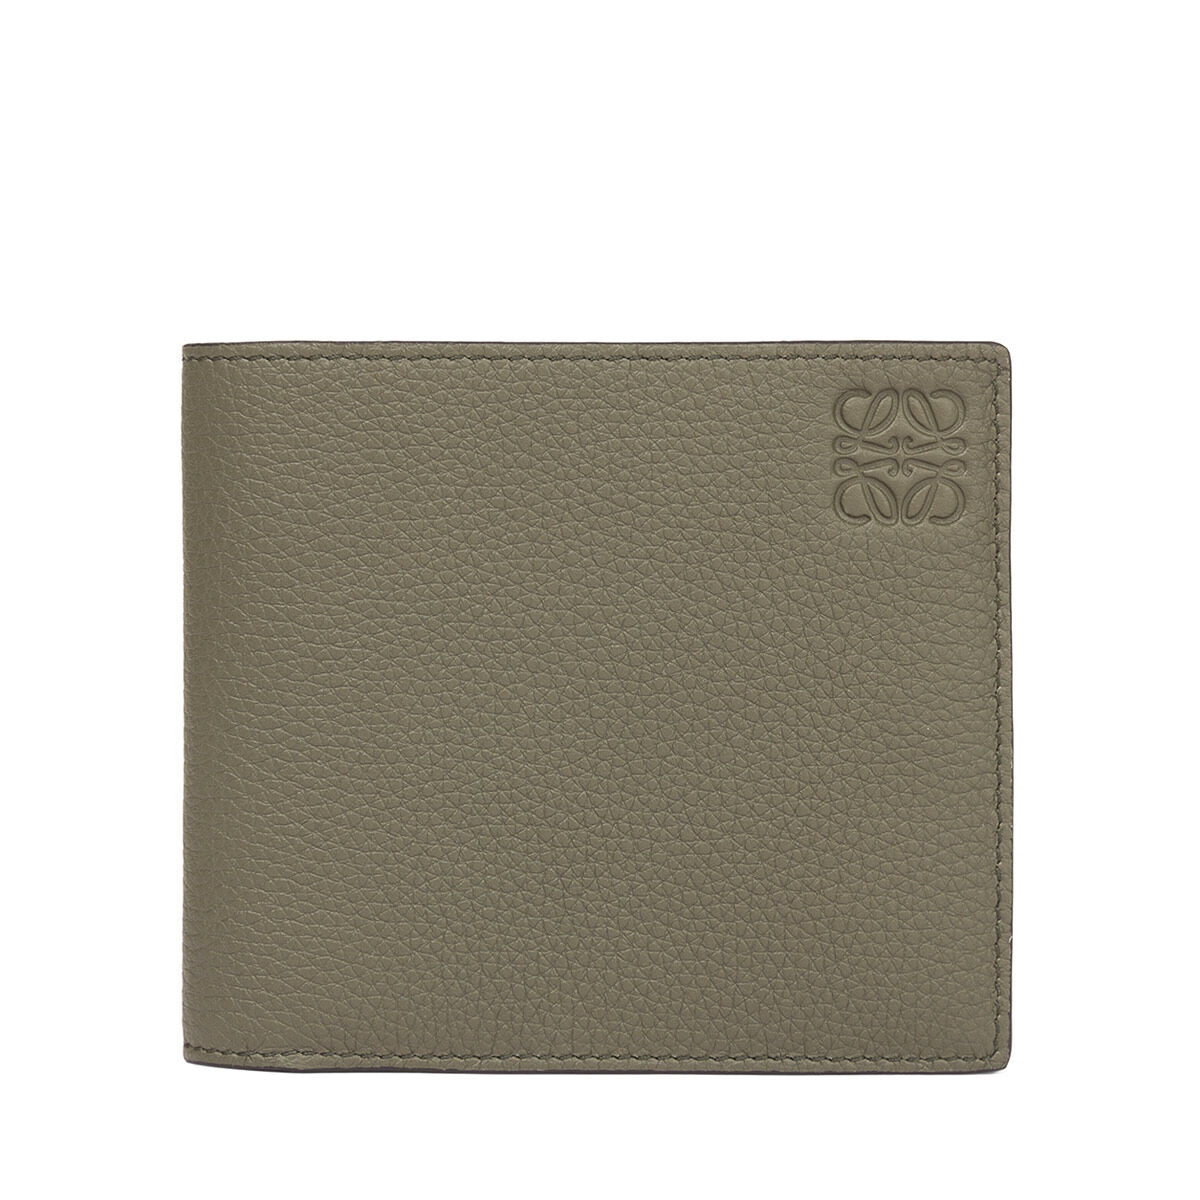 LOEWE Bifold Wallet Khaki Green/Pecan Color all